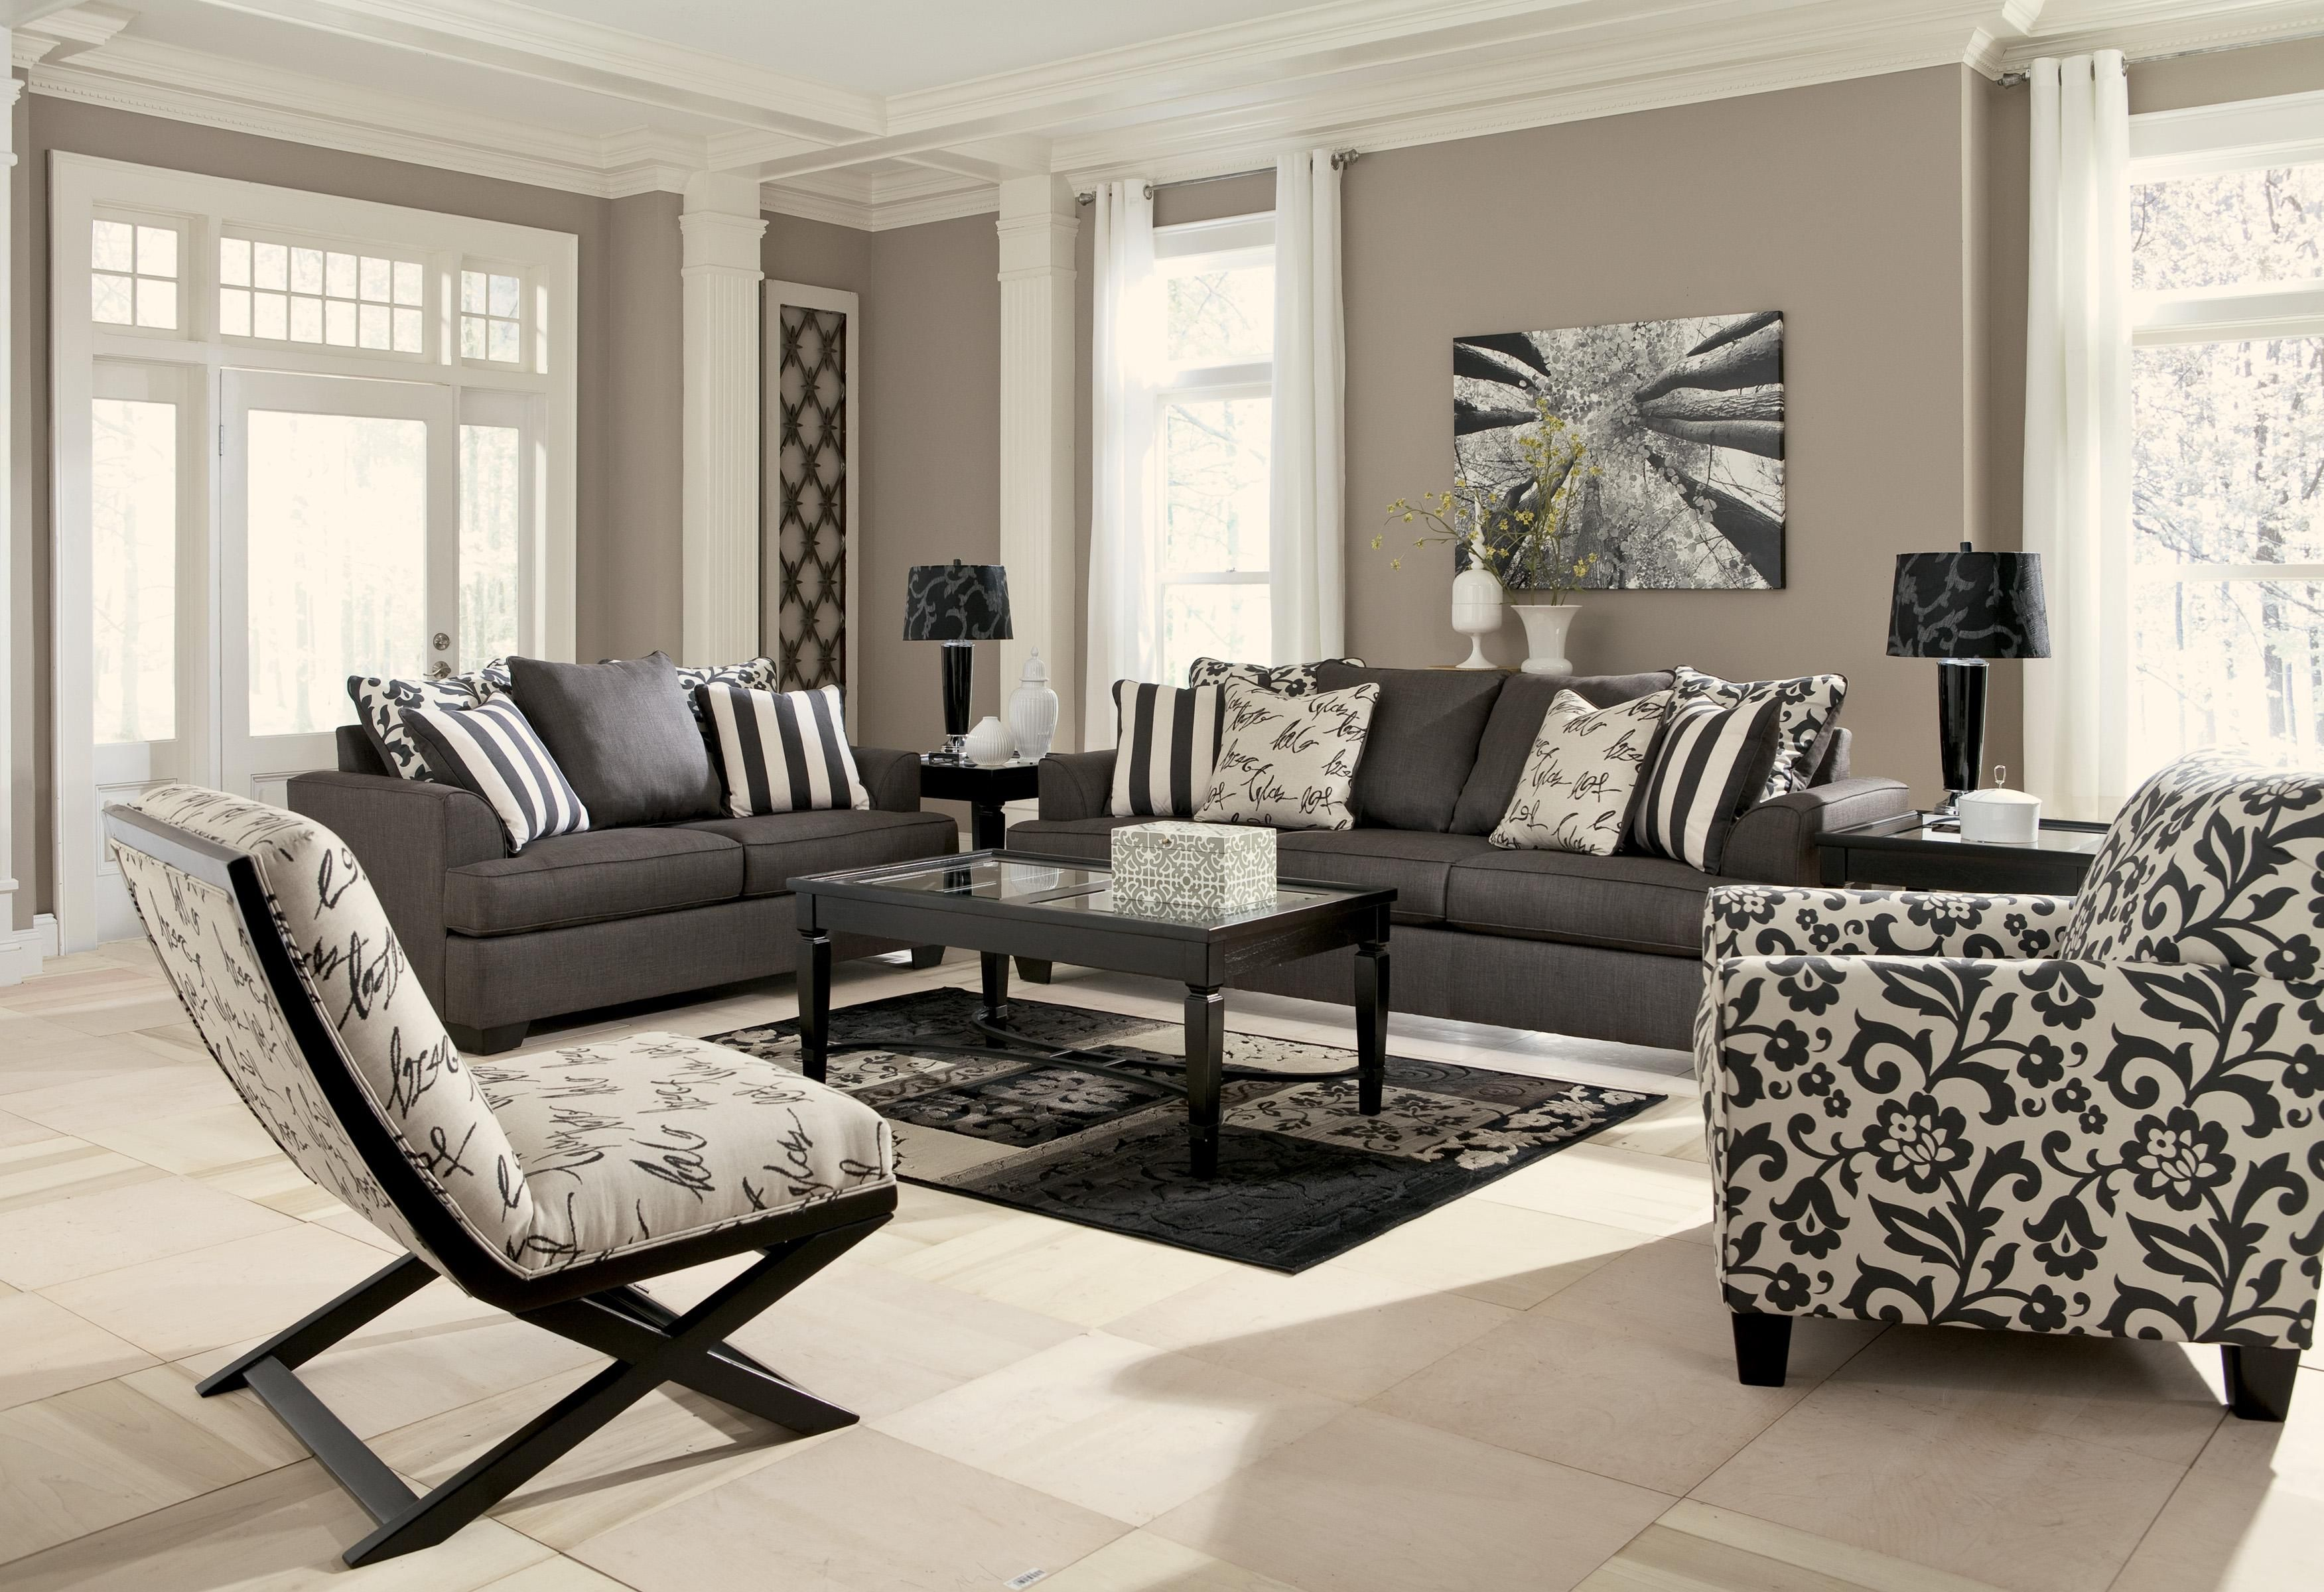 images about Furniture on Pinterest Contemporary sofa